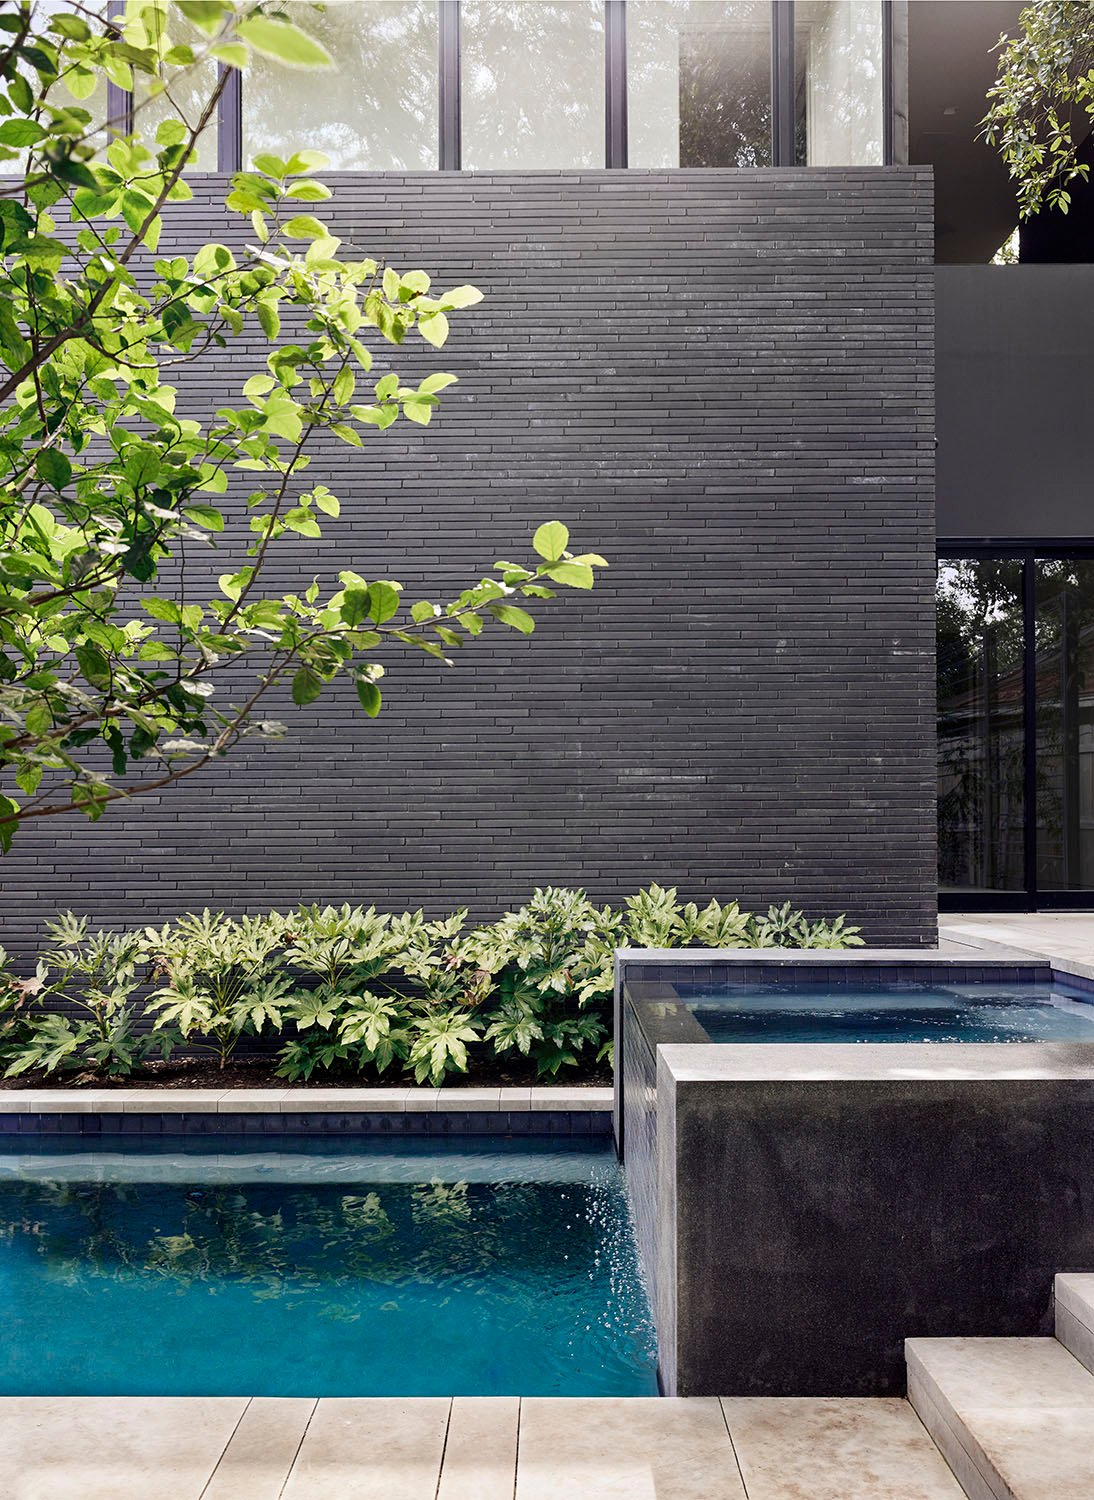 Detail of Pool Photo by Casey Dunn}